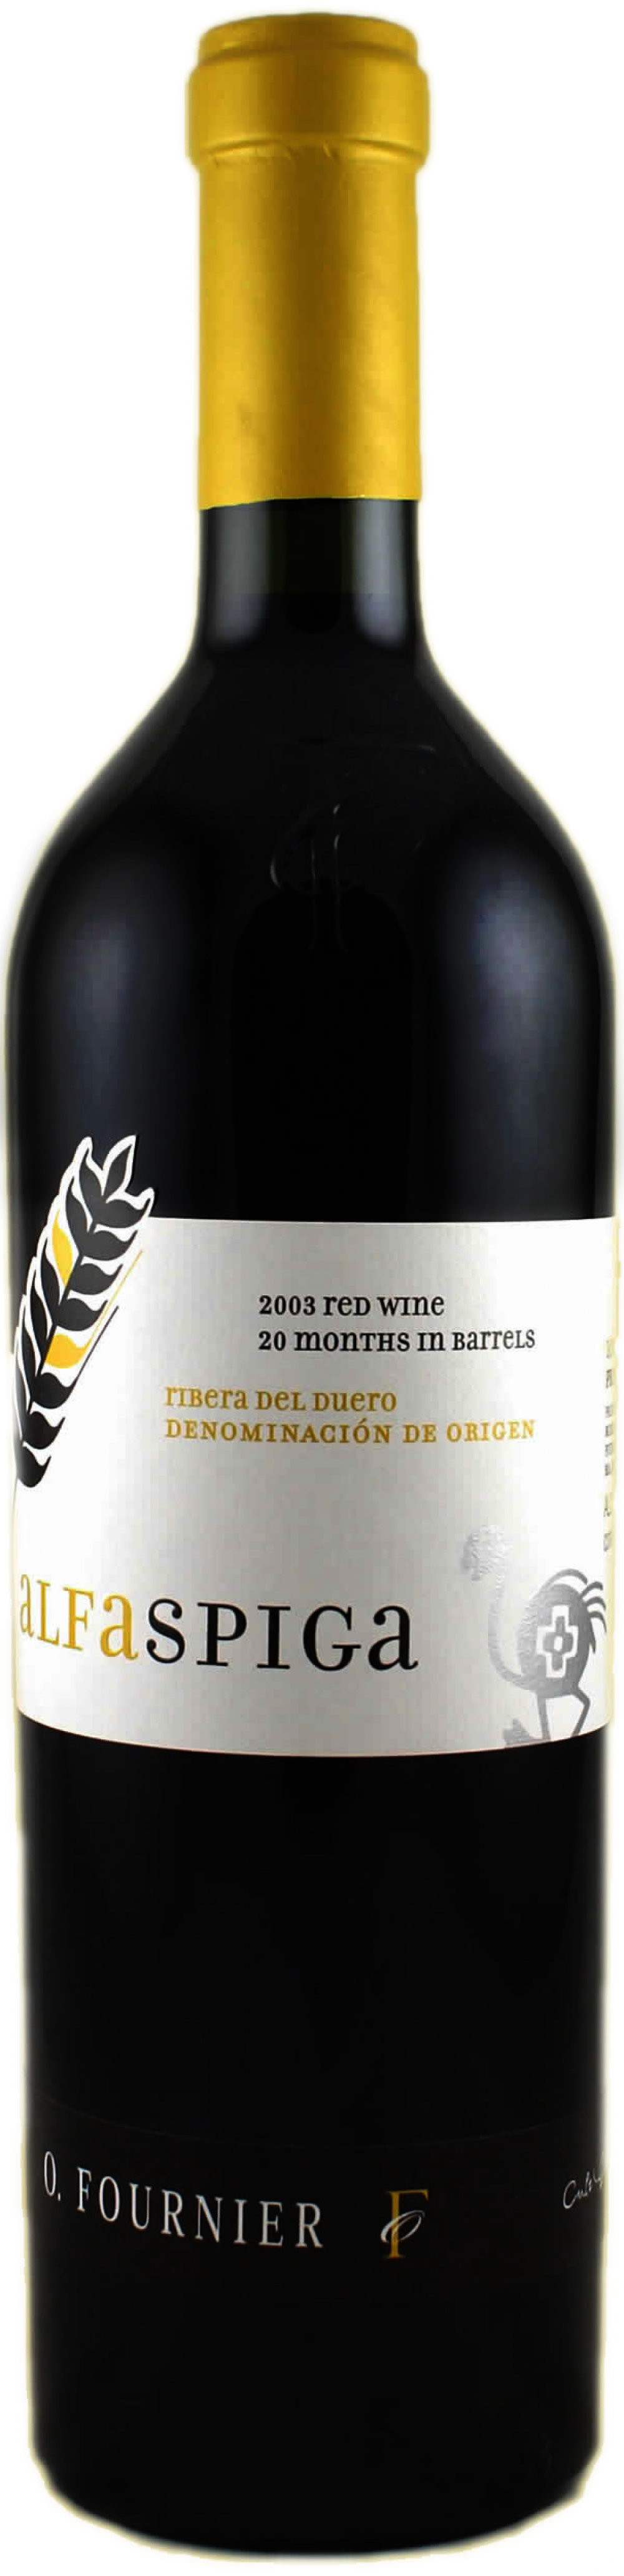 files/images/wines/Spain/bodegas-y-vinedos-o.-fournier-ribera-del-duero/EDFS2007_pic_big.png